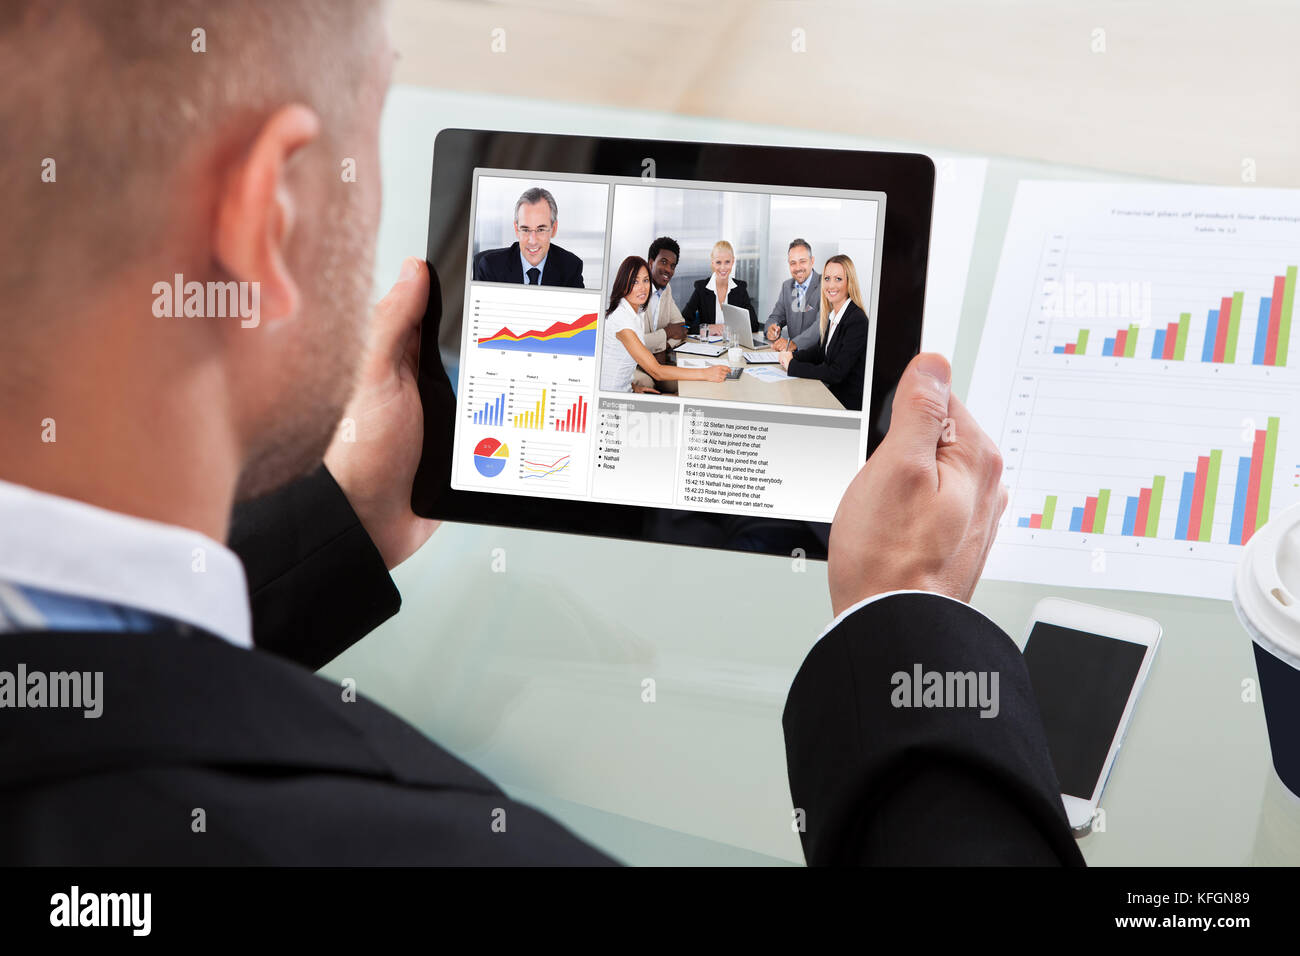 Businessman on a video or conference call on his tablet with an image of work colleagues in a meeting and bar graphs - Stock Image